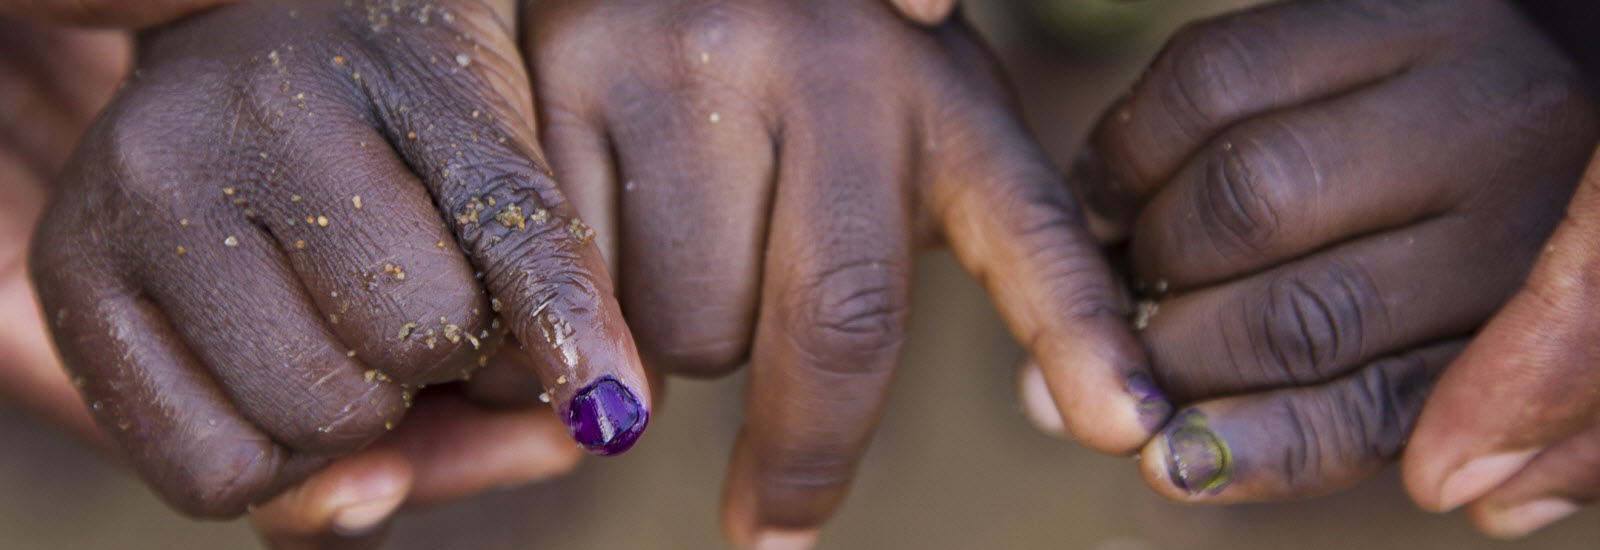 1 PURPLE PINKIE = 1 CHILD WITHOUT POLIO